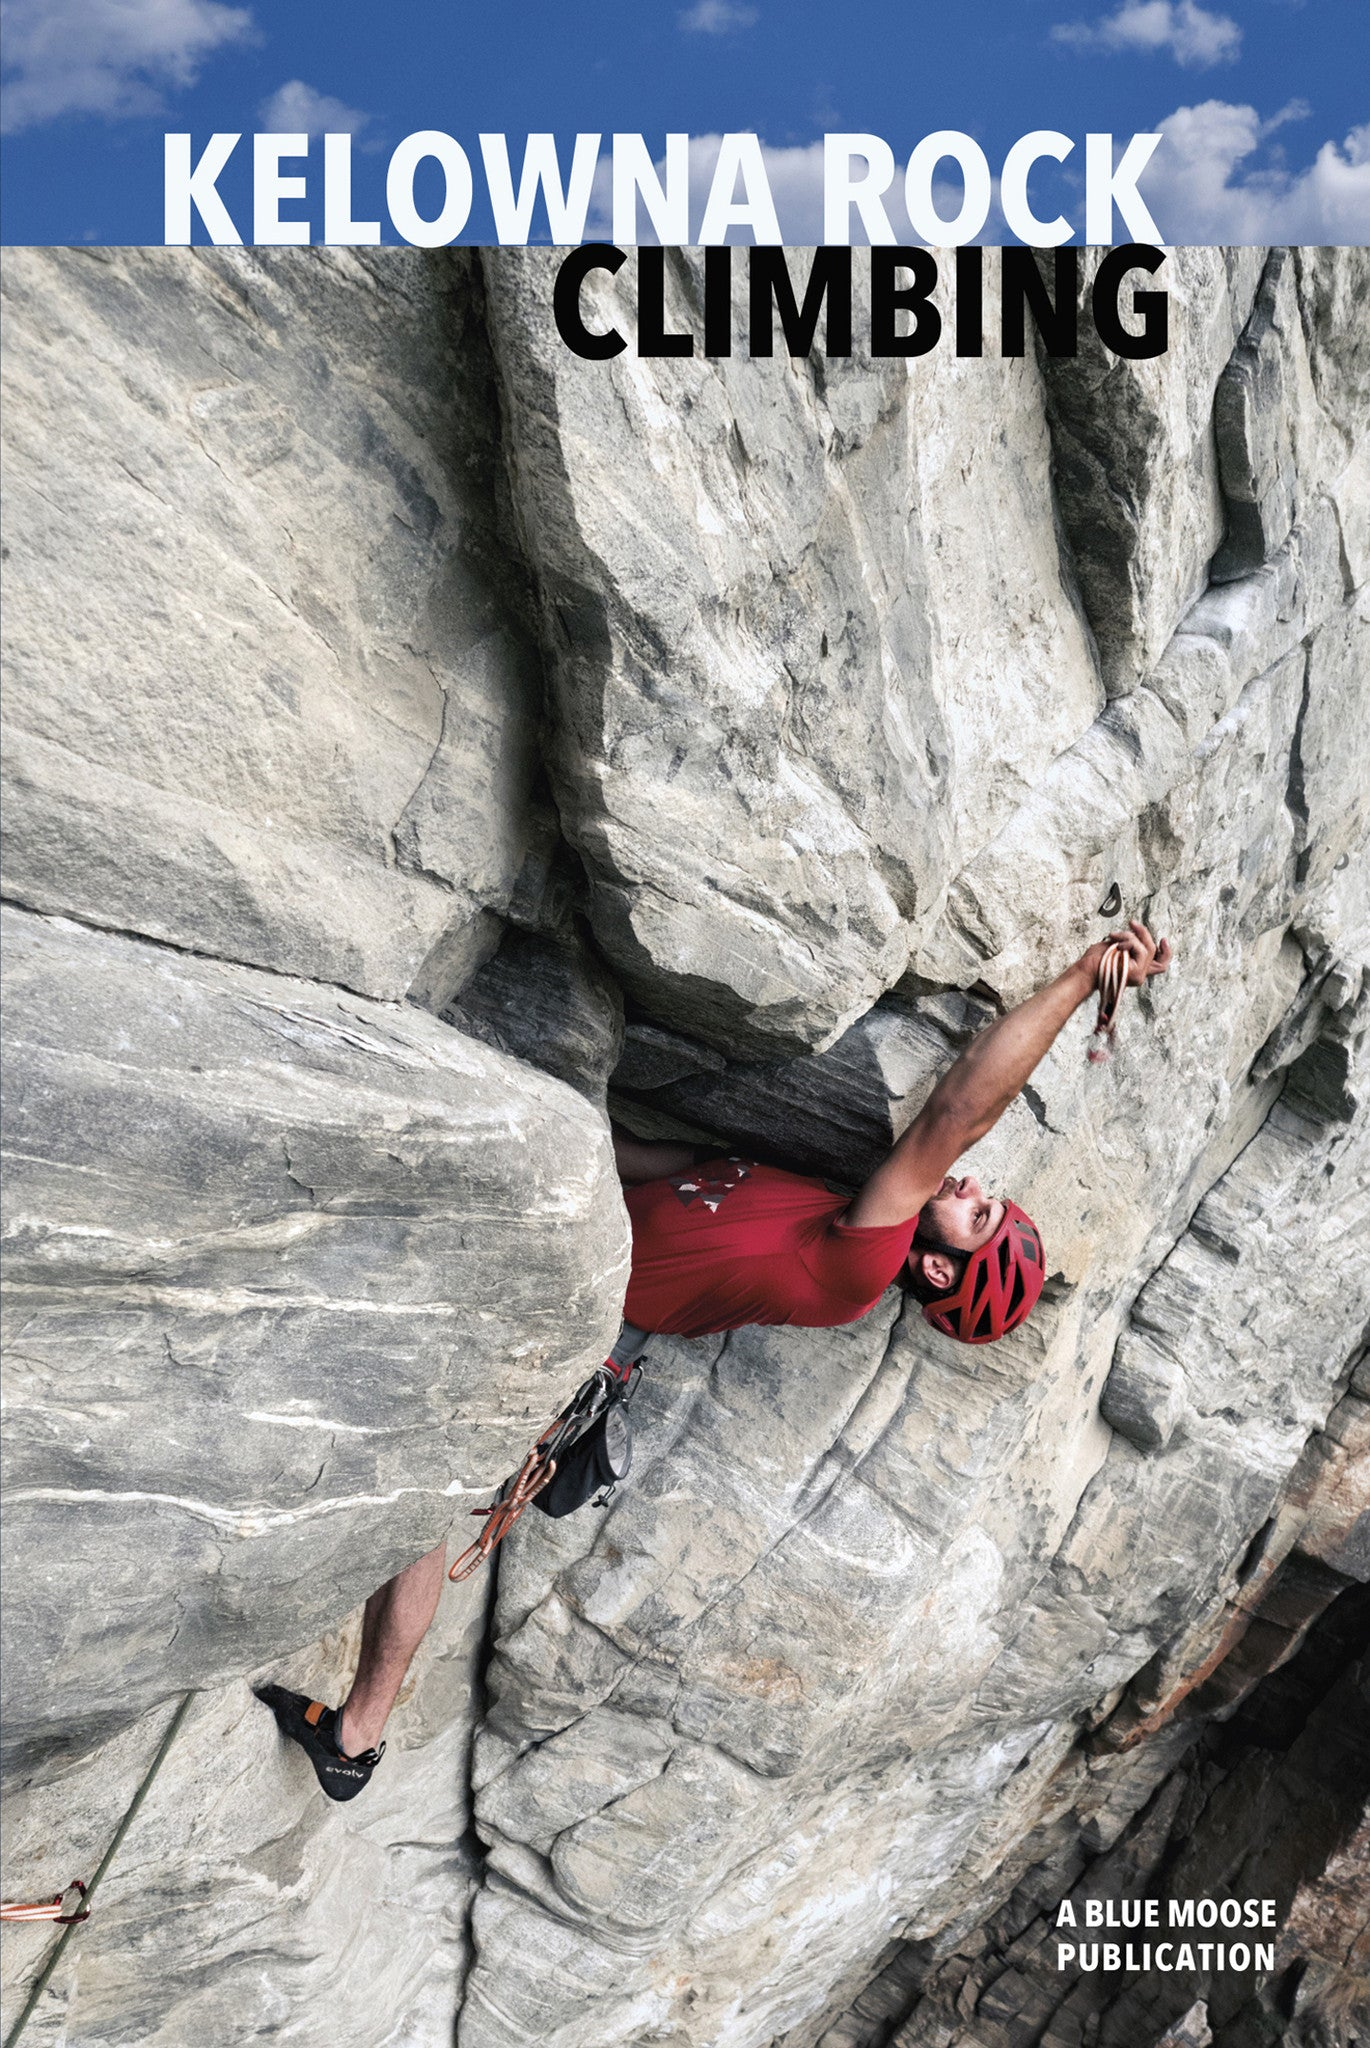 Kelowna Rock Climbing Guidebook